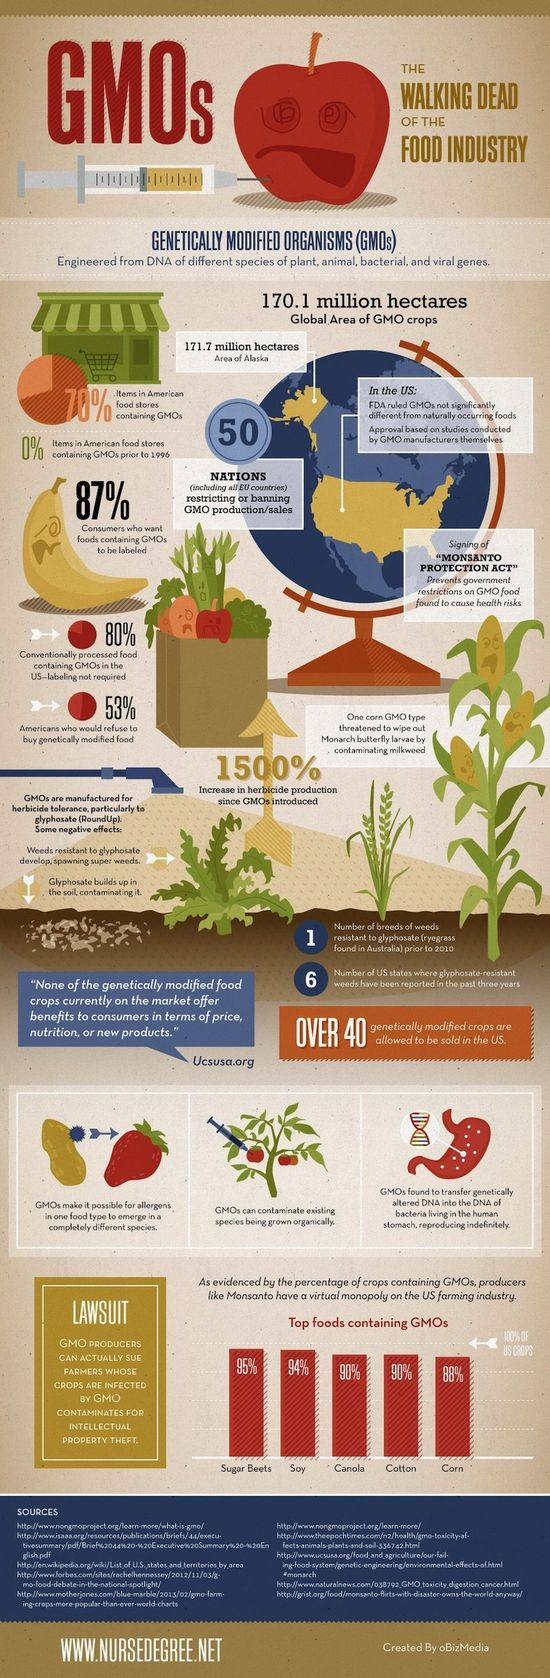 A Reminder That GMOs Are Terrible (Infographic)